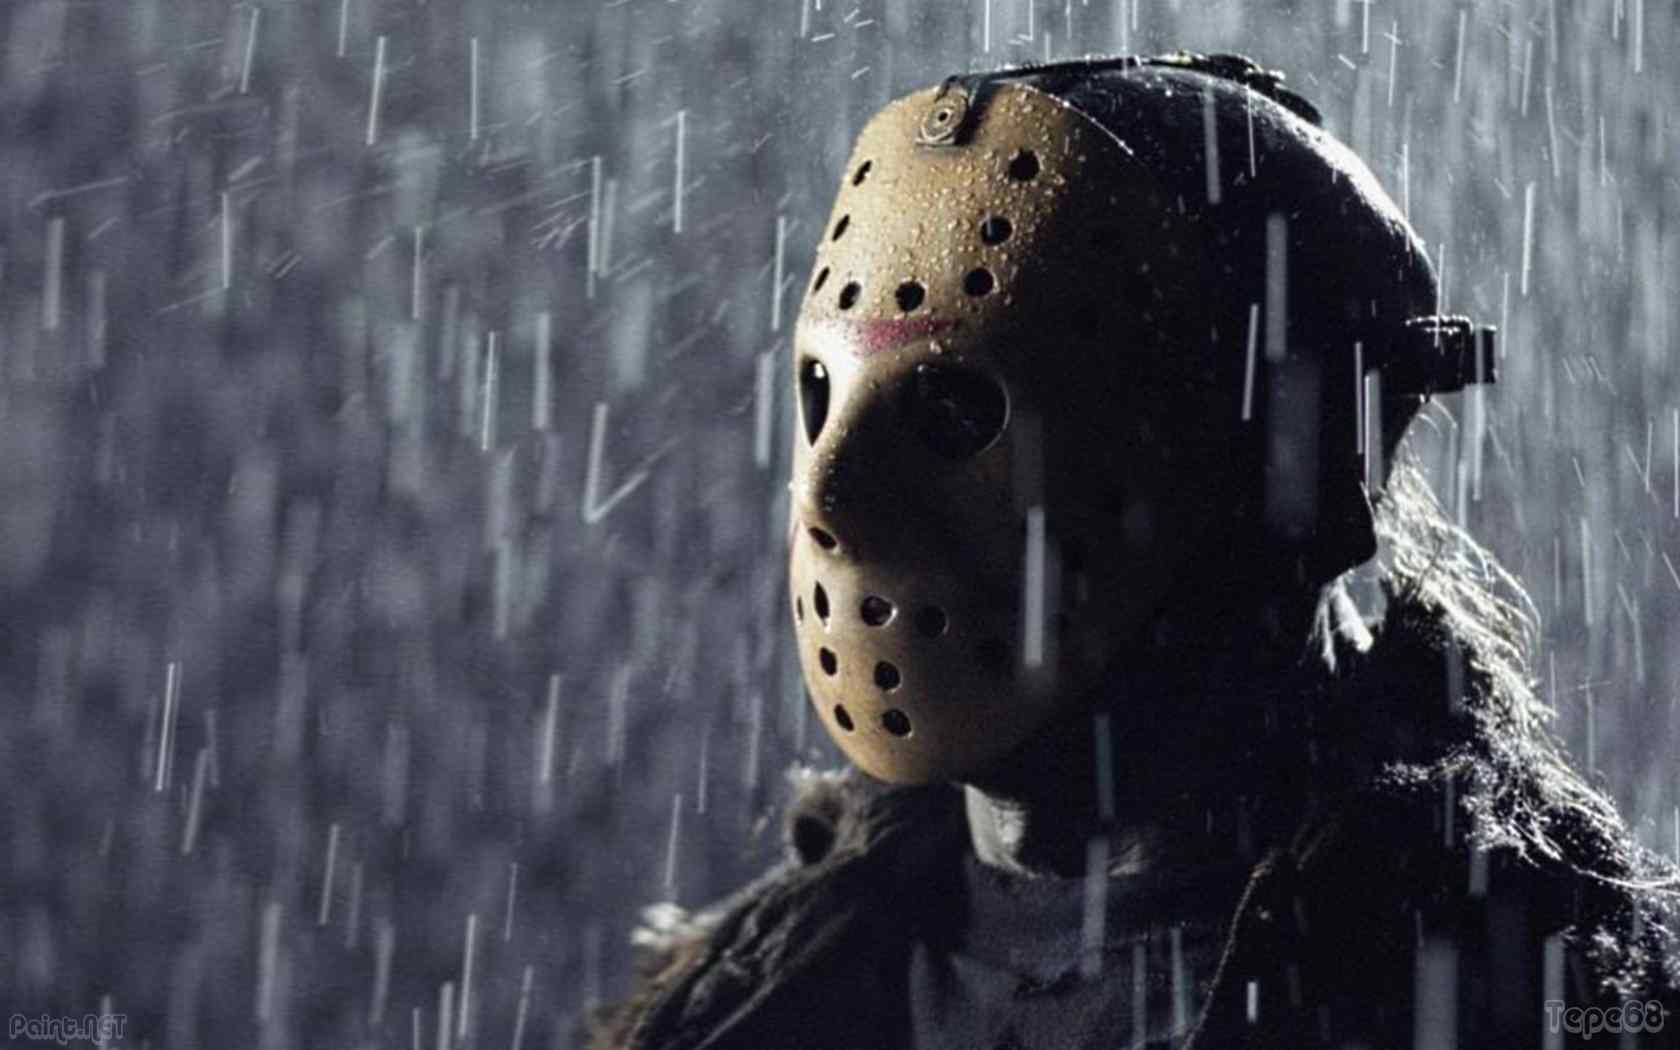 Jason Voorhees from the friday 13th franchise.